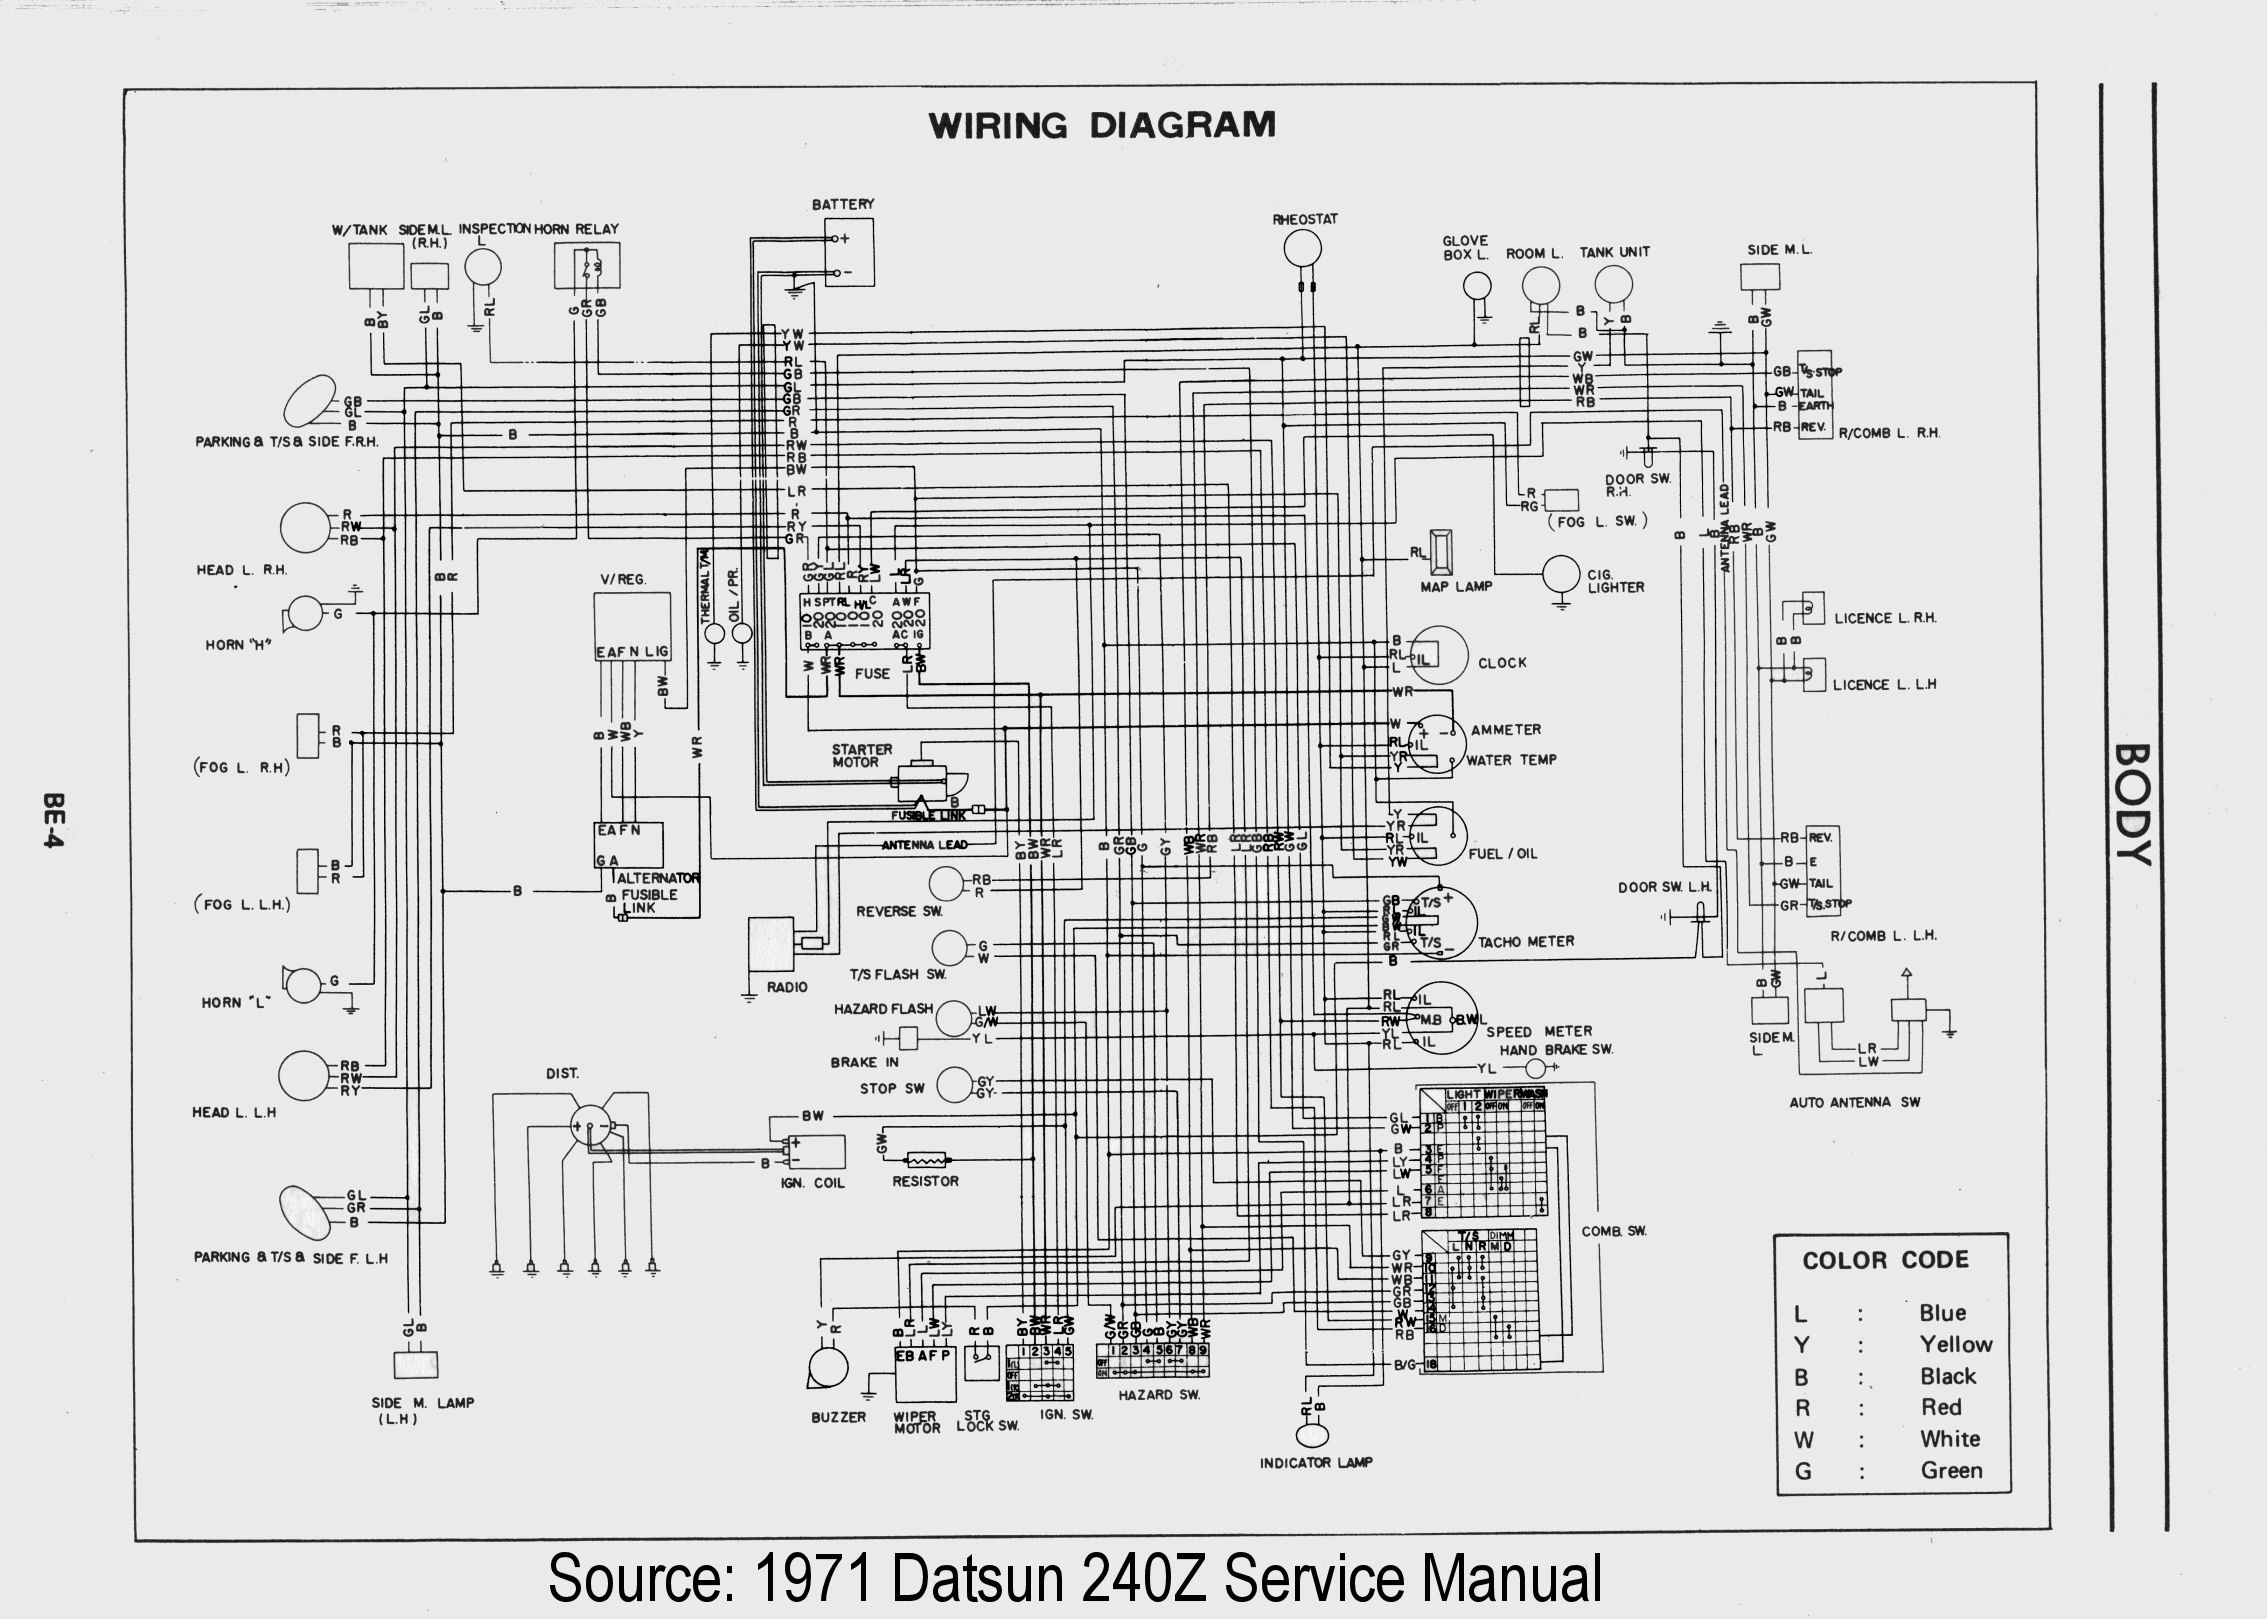 Wiring Diagram HiRes 2 generic wiring troubleshooting checklist woodworkerb Custom Automotive Wiring Harness Kits at metegol.co